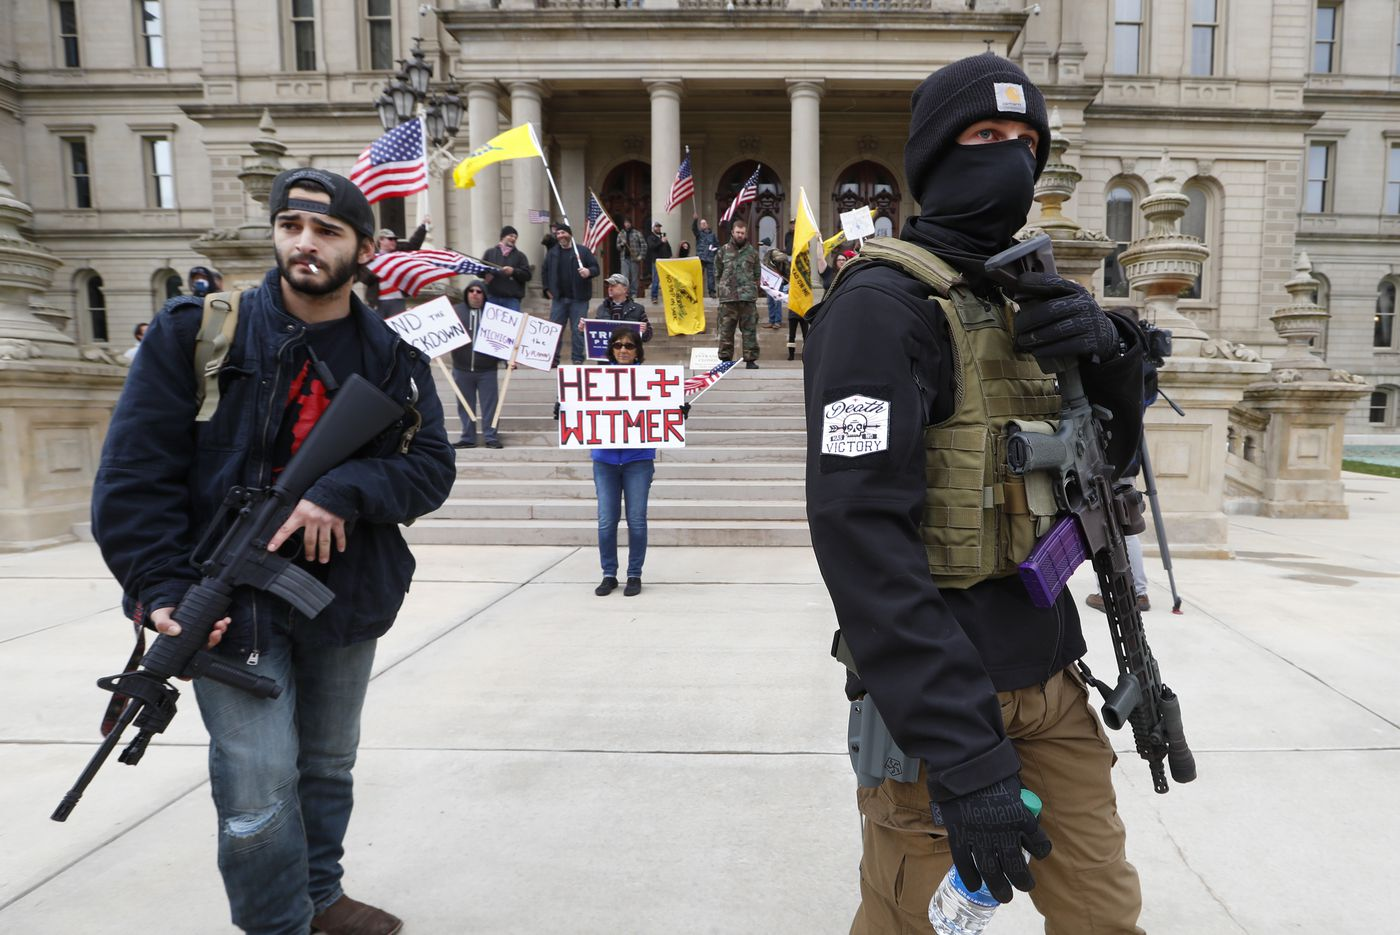 Protesters opposing business restrictions due to the coronavirus carry rifles near the steps of the Michigan State Capitol building in Lansing, Mich., on April 15, 2020.